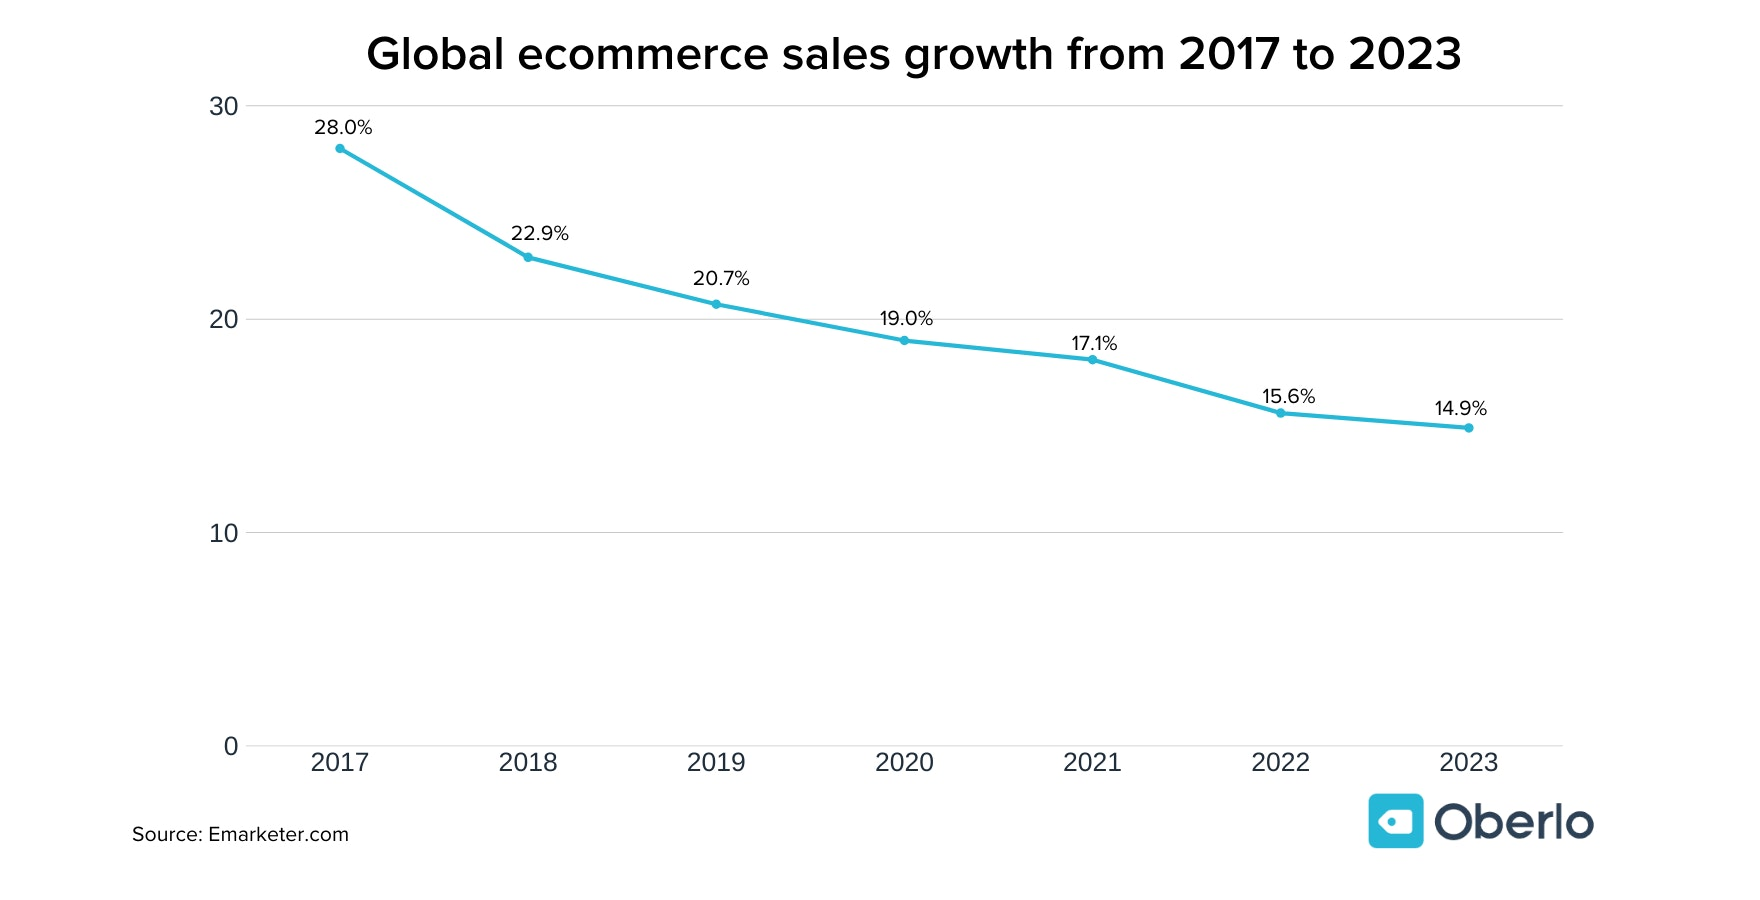 Global ecommerce sales growth